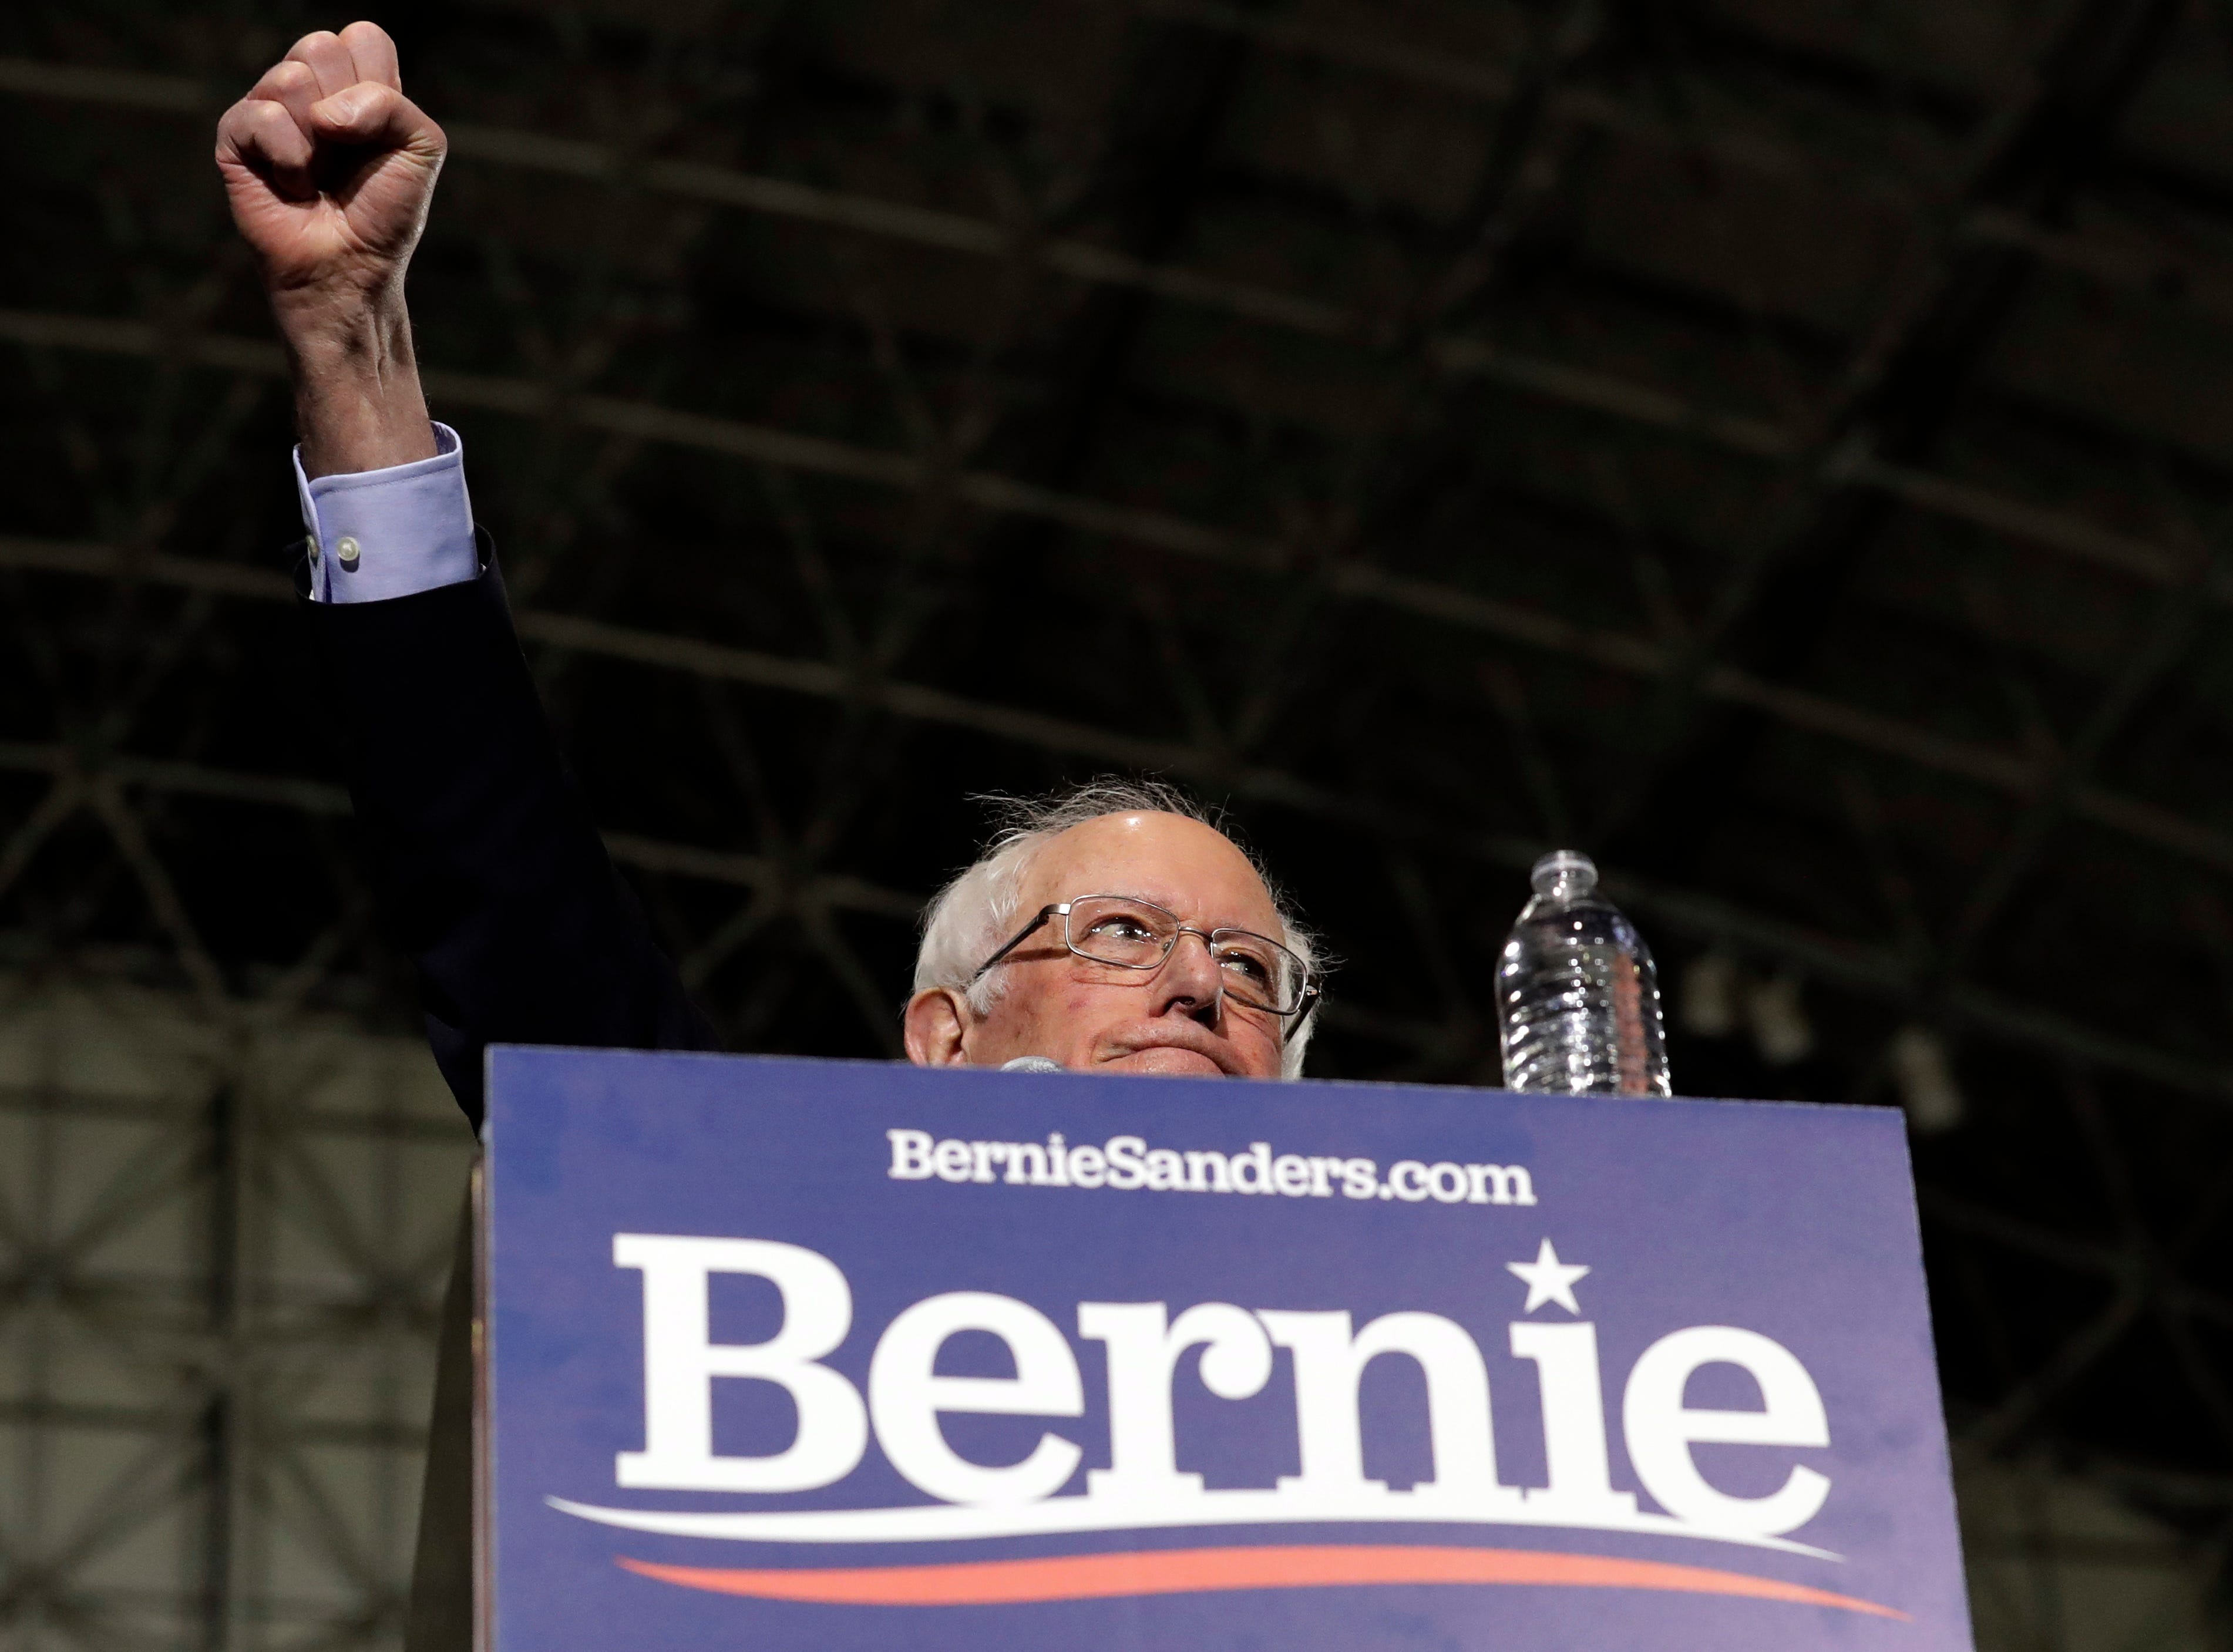 Sen. Bernie Sanders, I-Vt., arrives to the stage as he kicks off his 2020 presidential campaign at Navy Pier in Chicago, Sunday, March 3, 2019. Over the next several weeks, Sanders will travel to Iowa, New Hampshire, South Carolina, Nevada, and California. He will then return to Burlington, Vermont, for the official launch of his campaign.